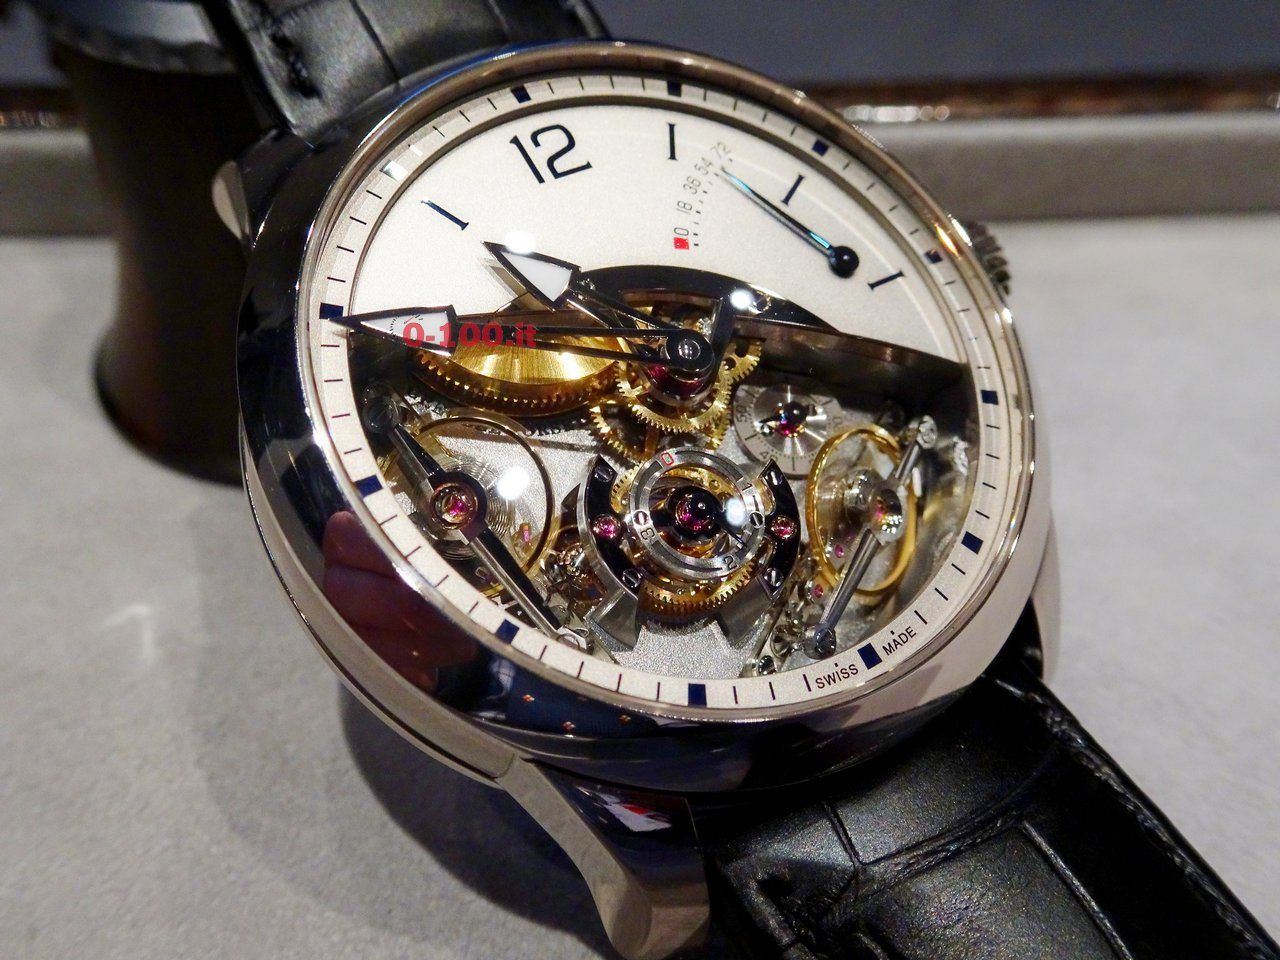 greubel-forsey-sihh-2016-0-100_19